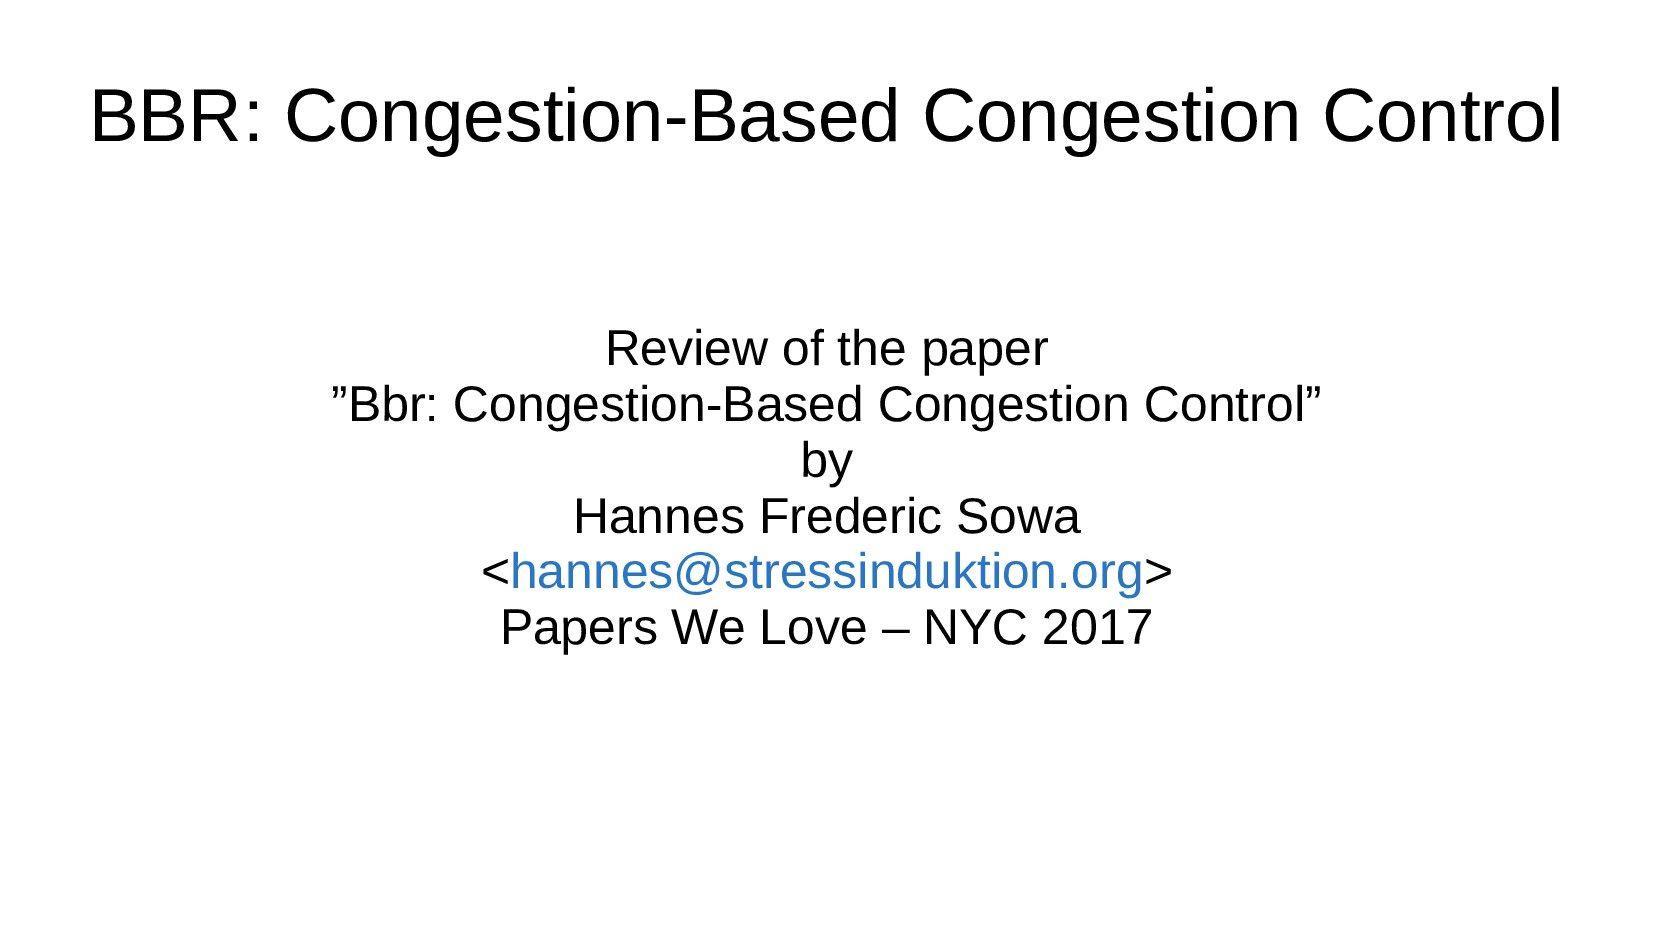 BBR: Congestion-Based Congestion Control Review...